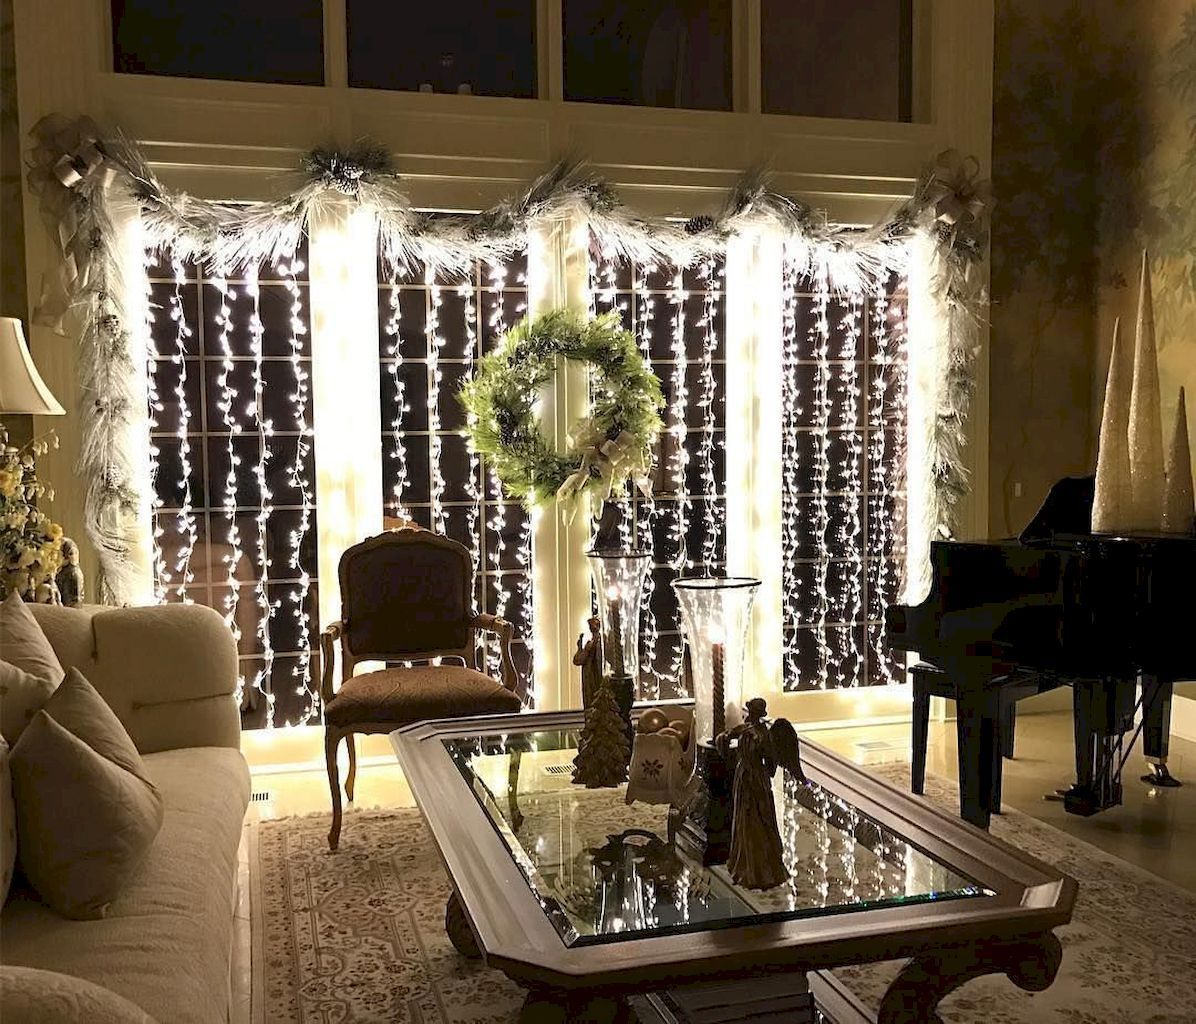 Pin By D M On Christmas In 2020 Christmas Lights Indoor Decor Christmas Lights Inside Hanging Christmas Lights